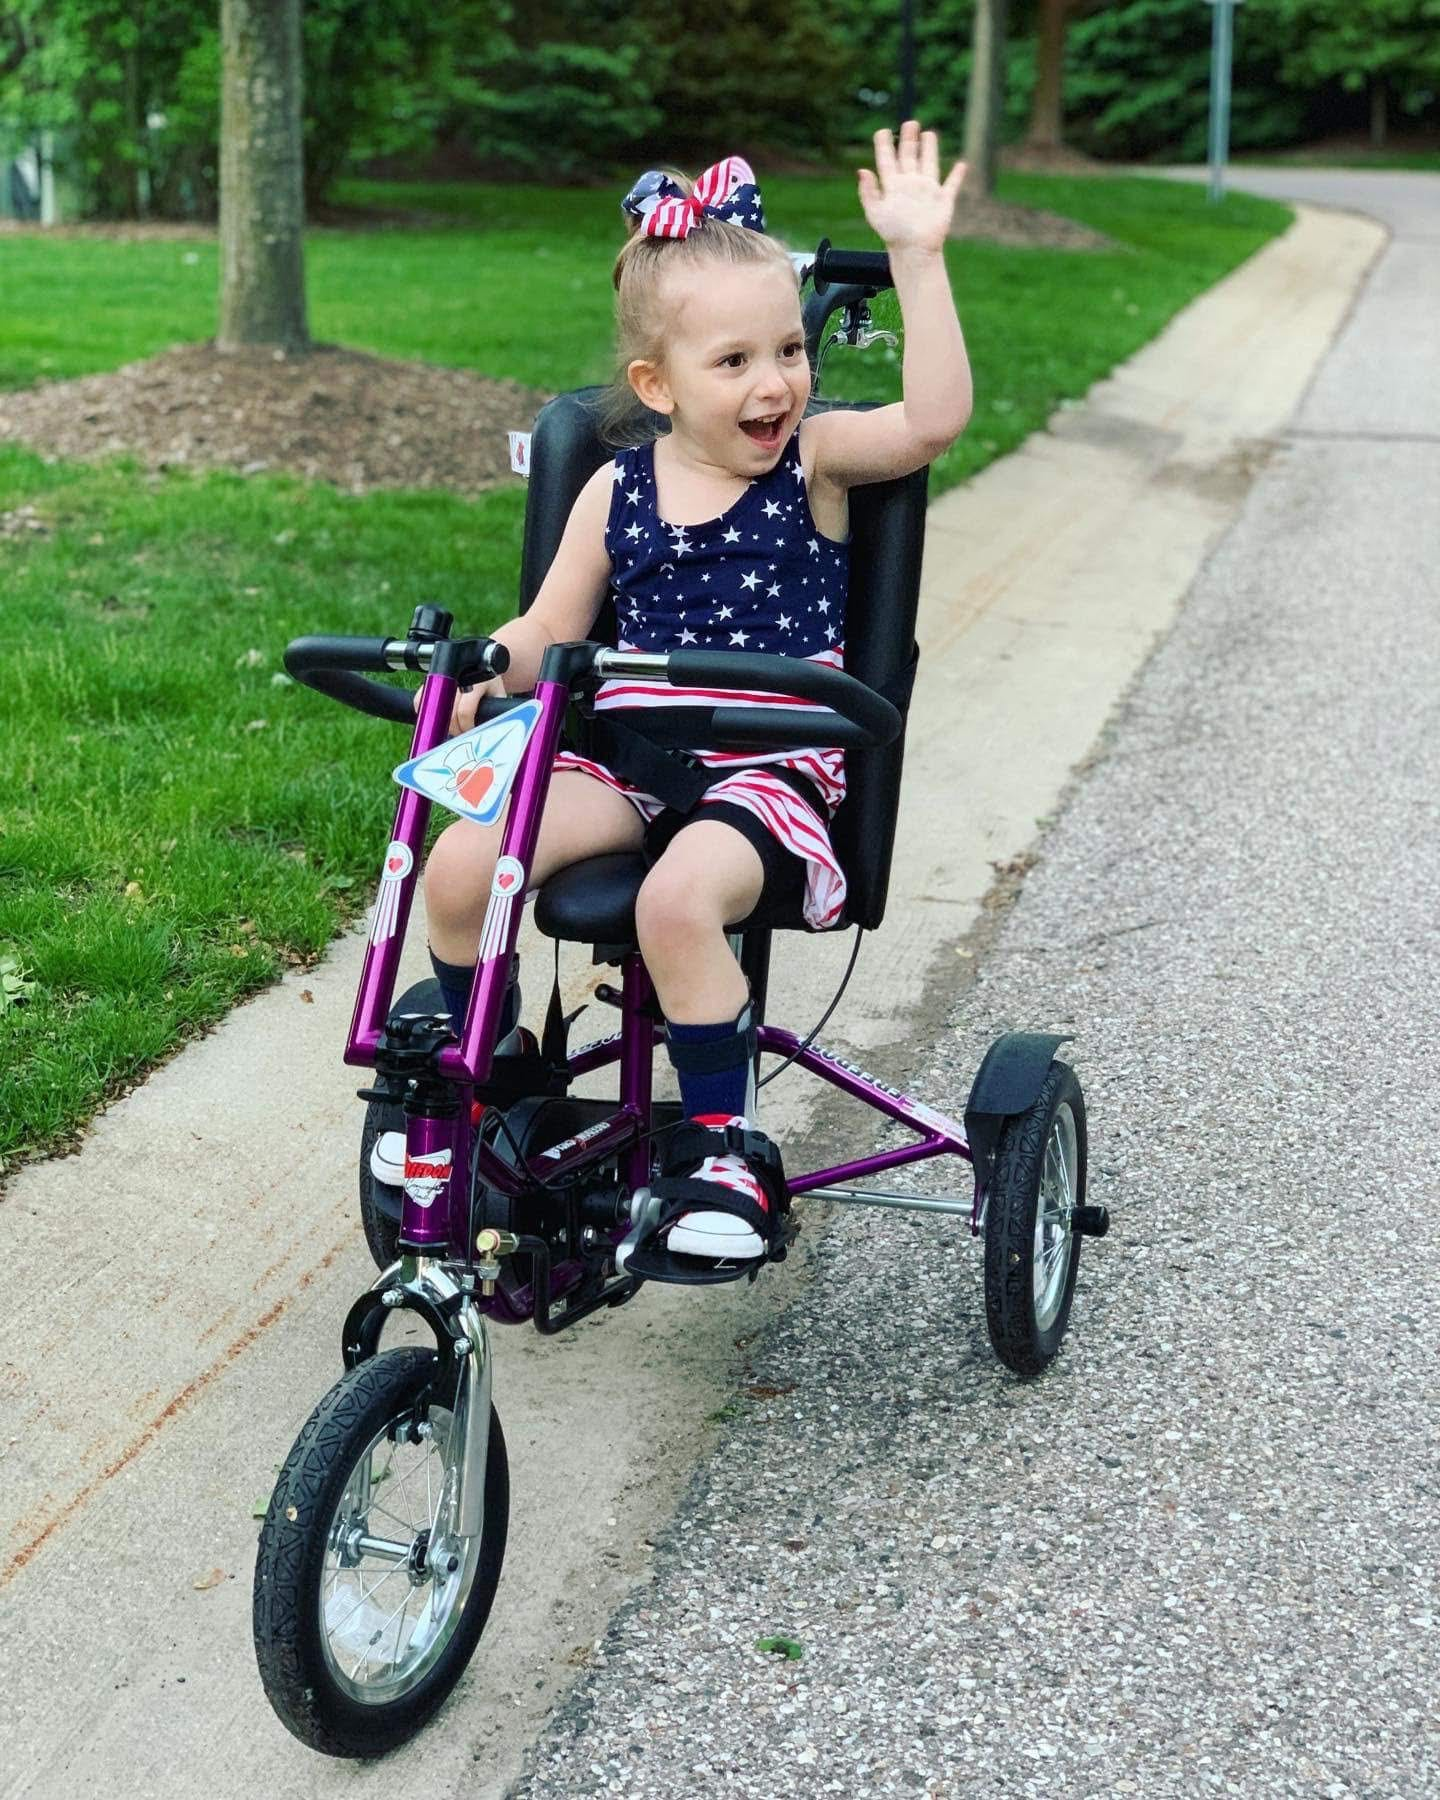 a young girl wearing an american flag-themed outfit on a purple adaptive bike